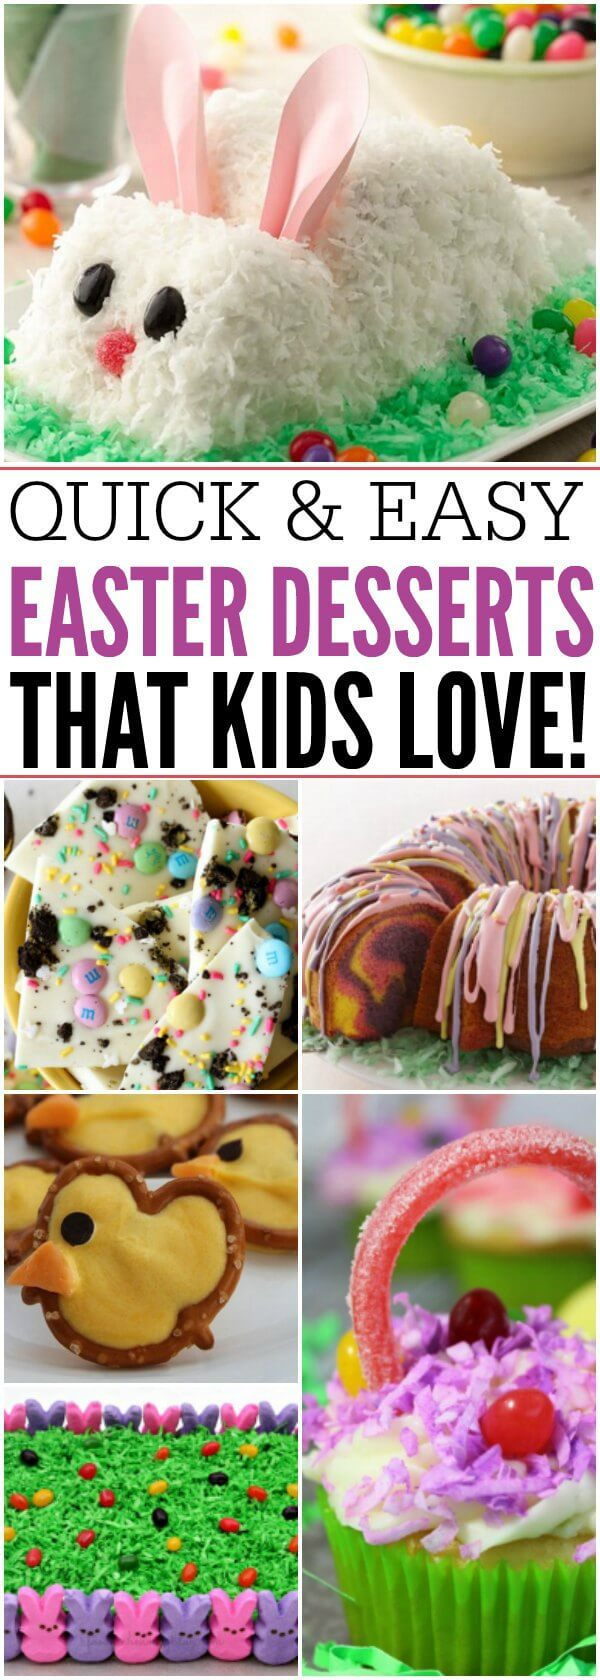 Here are 21 Quick and Easy Easter Dessert Recipes That Everyone will Adore! These cute Easter desserts for kids are sure to be a hit with everyone! From cakes and cupcakes to candy and treats, there is something everyone will love!